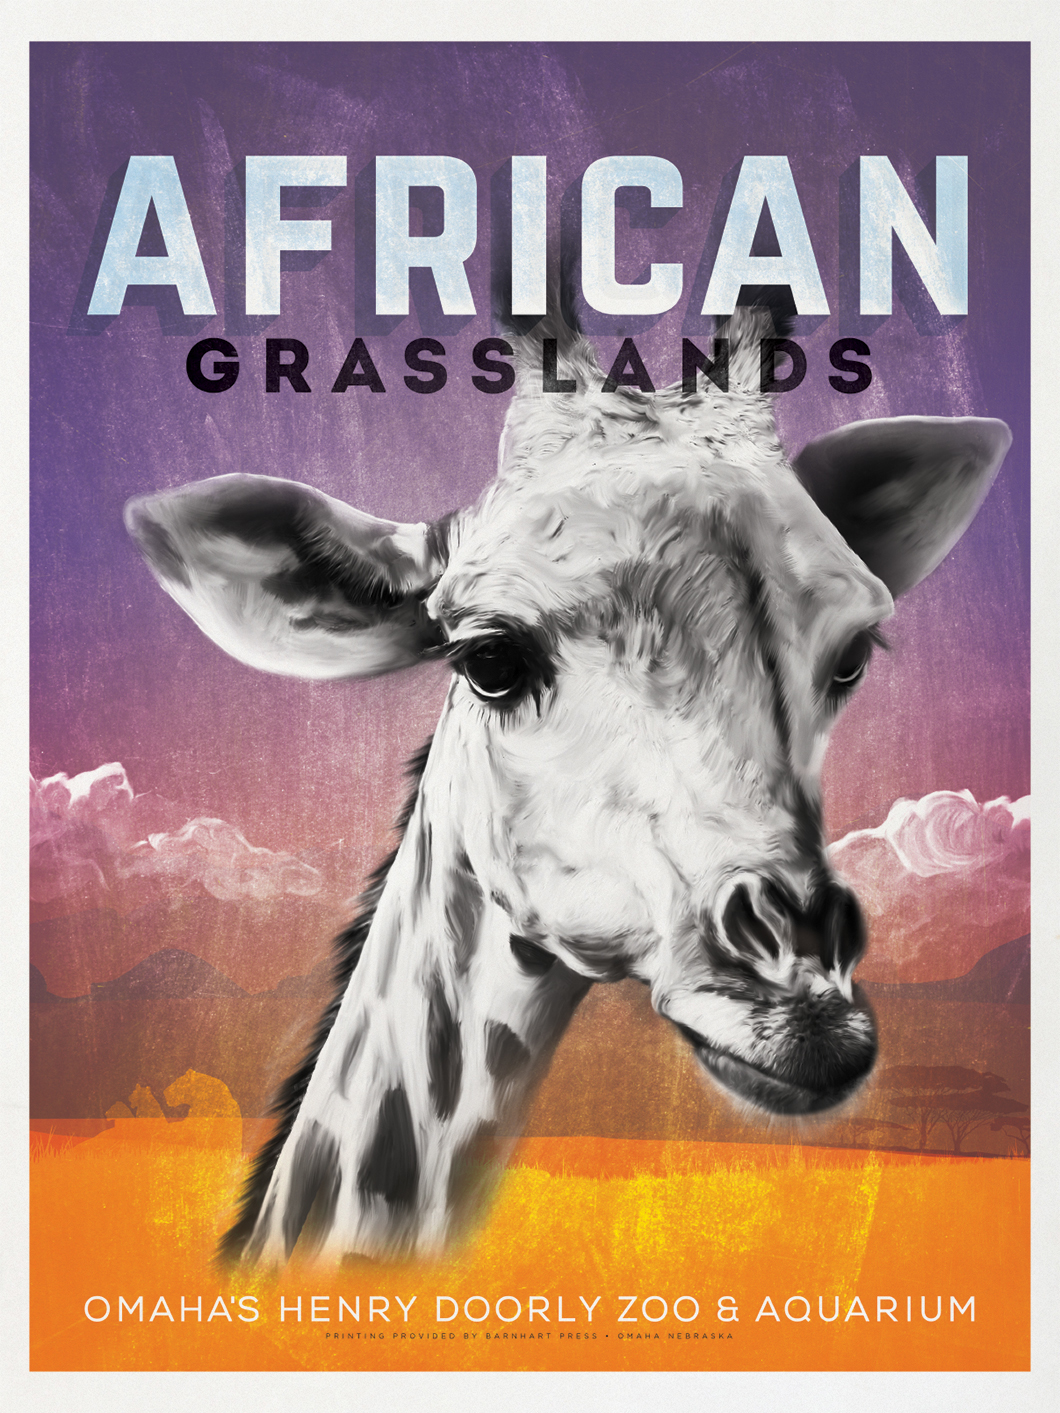 Omaha zoo careers best zoo 2017 omahas henry doorly zoo and aquarium zookeeping 101 sign full size henry doorly zoo s african grlands now open to the public axs publicscrutiny Gallery